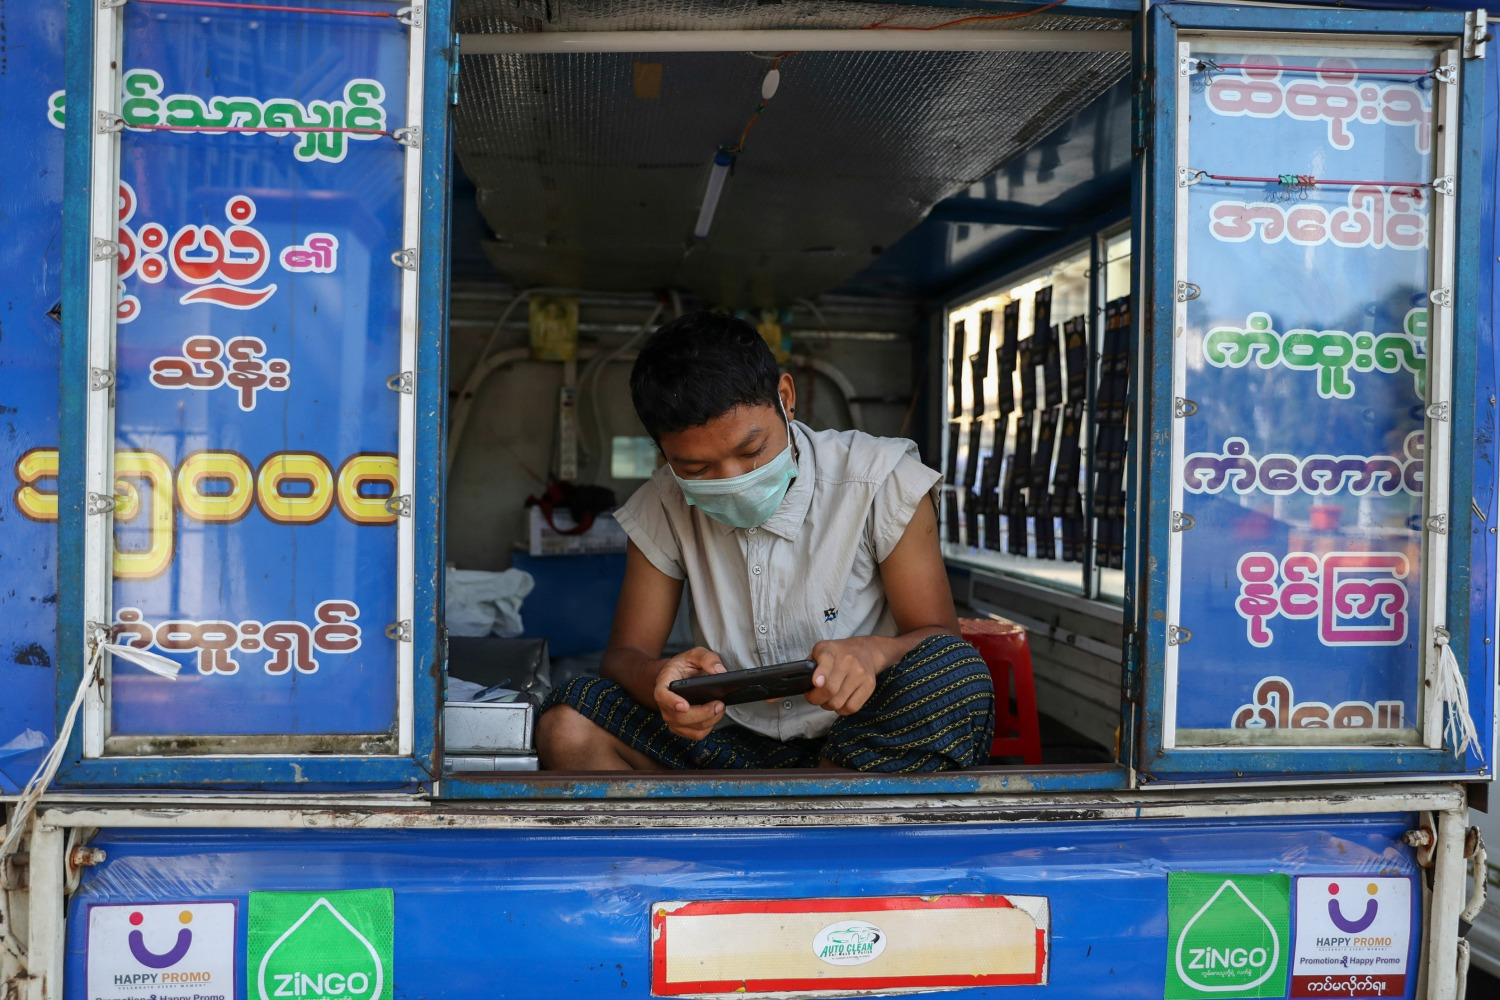 A lottery vendor in Yangon, Myanmar.